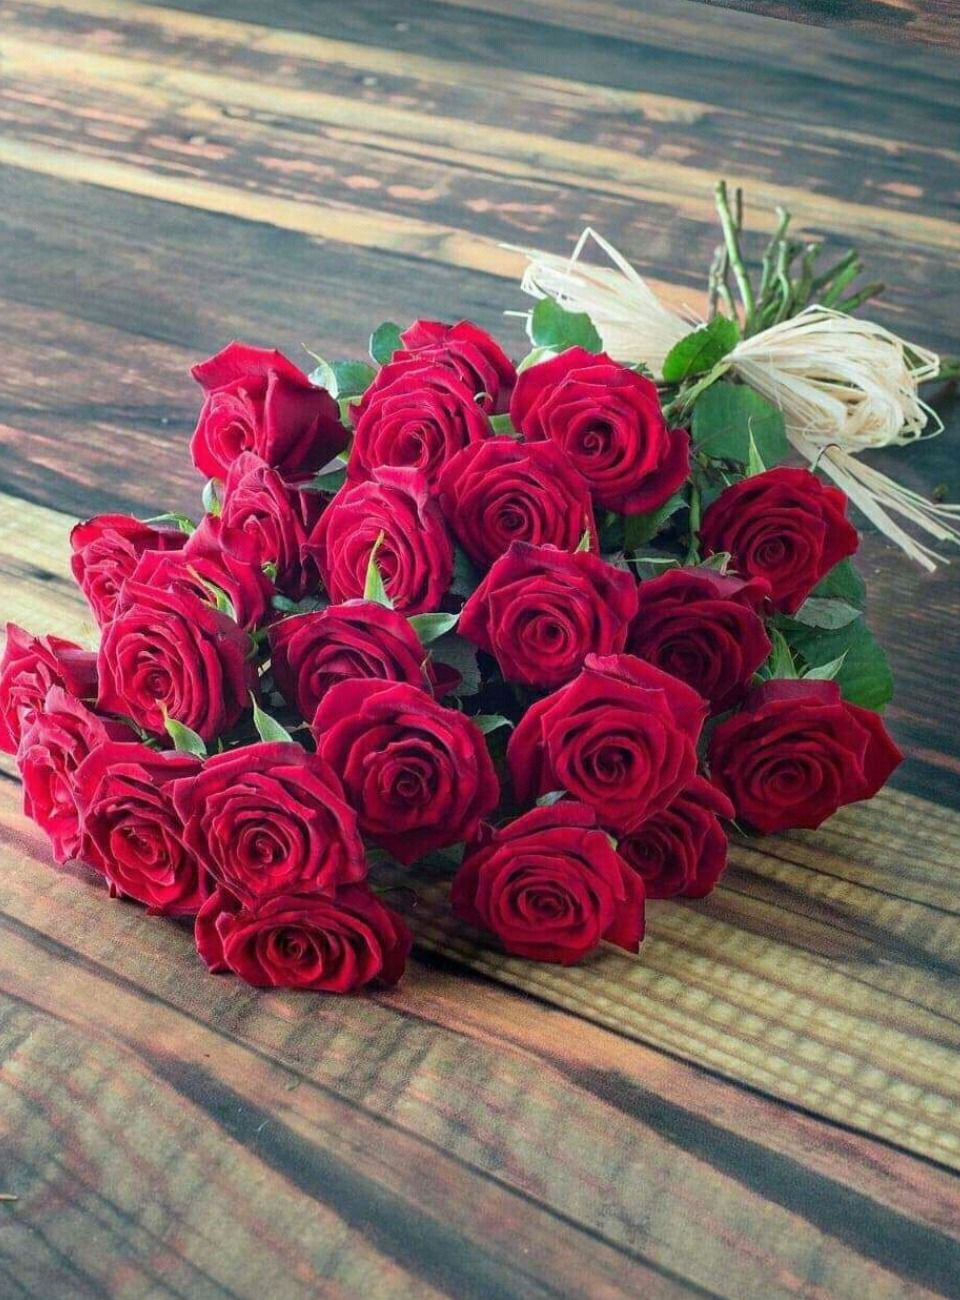 Quranmualim Hadith Sunnah Learn Islam Beautiful Rose Flowers Luxury Flower Bouquets Flowers Bouquet Gift